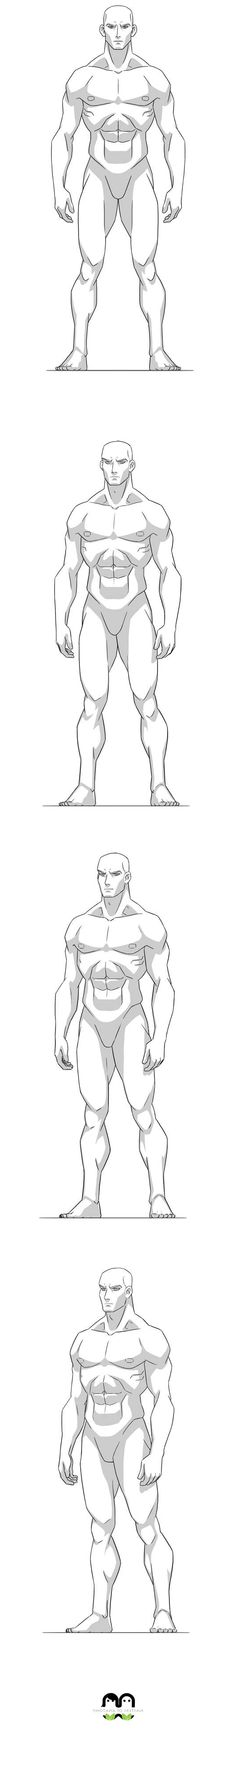 Art of Masters of Anatomy* Sketches Of Love, Drawing Sketches, Art Drawings, Human Anatomy Drawing, Body Drawing, Anatomy Art, Character Art, Character Design, Sketches Tutorial